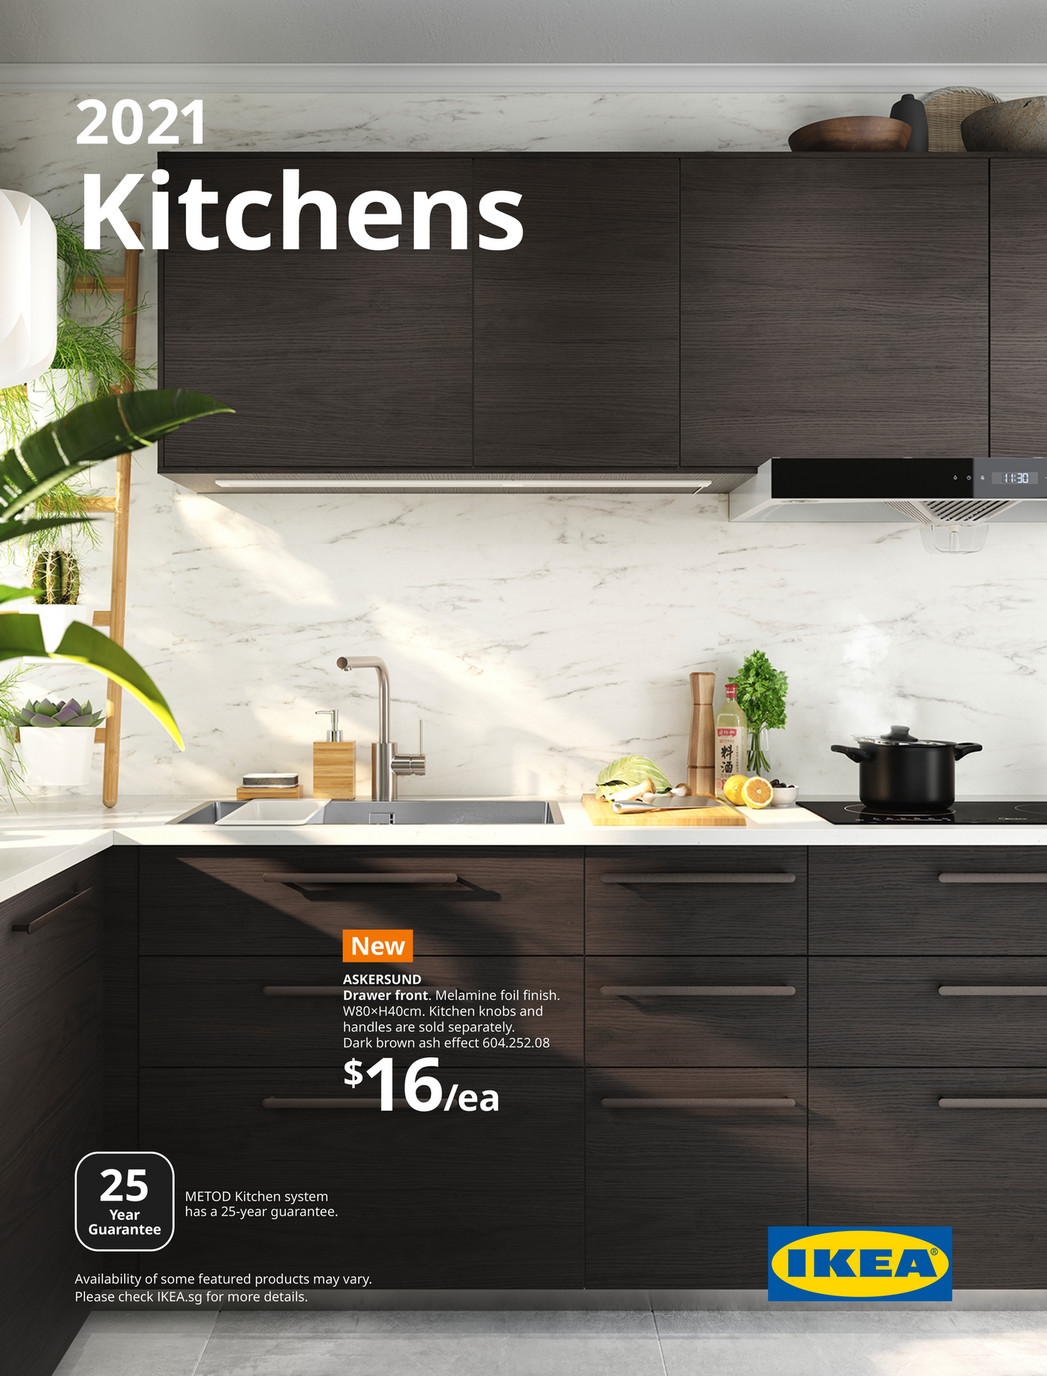 IKEA Kitchens 4 - Page 4